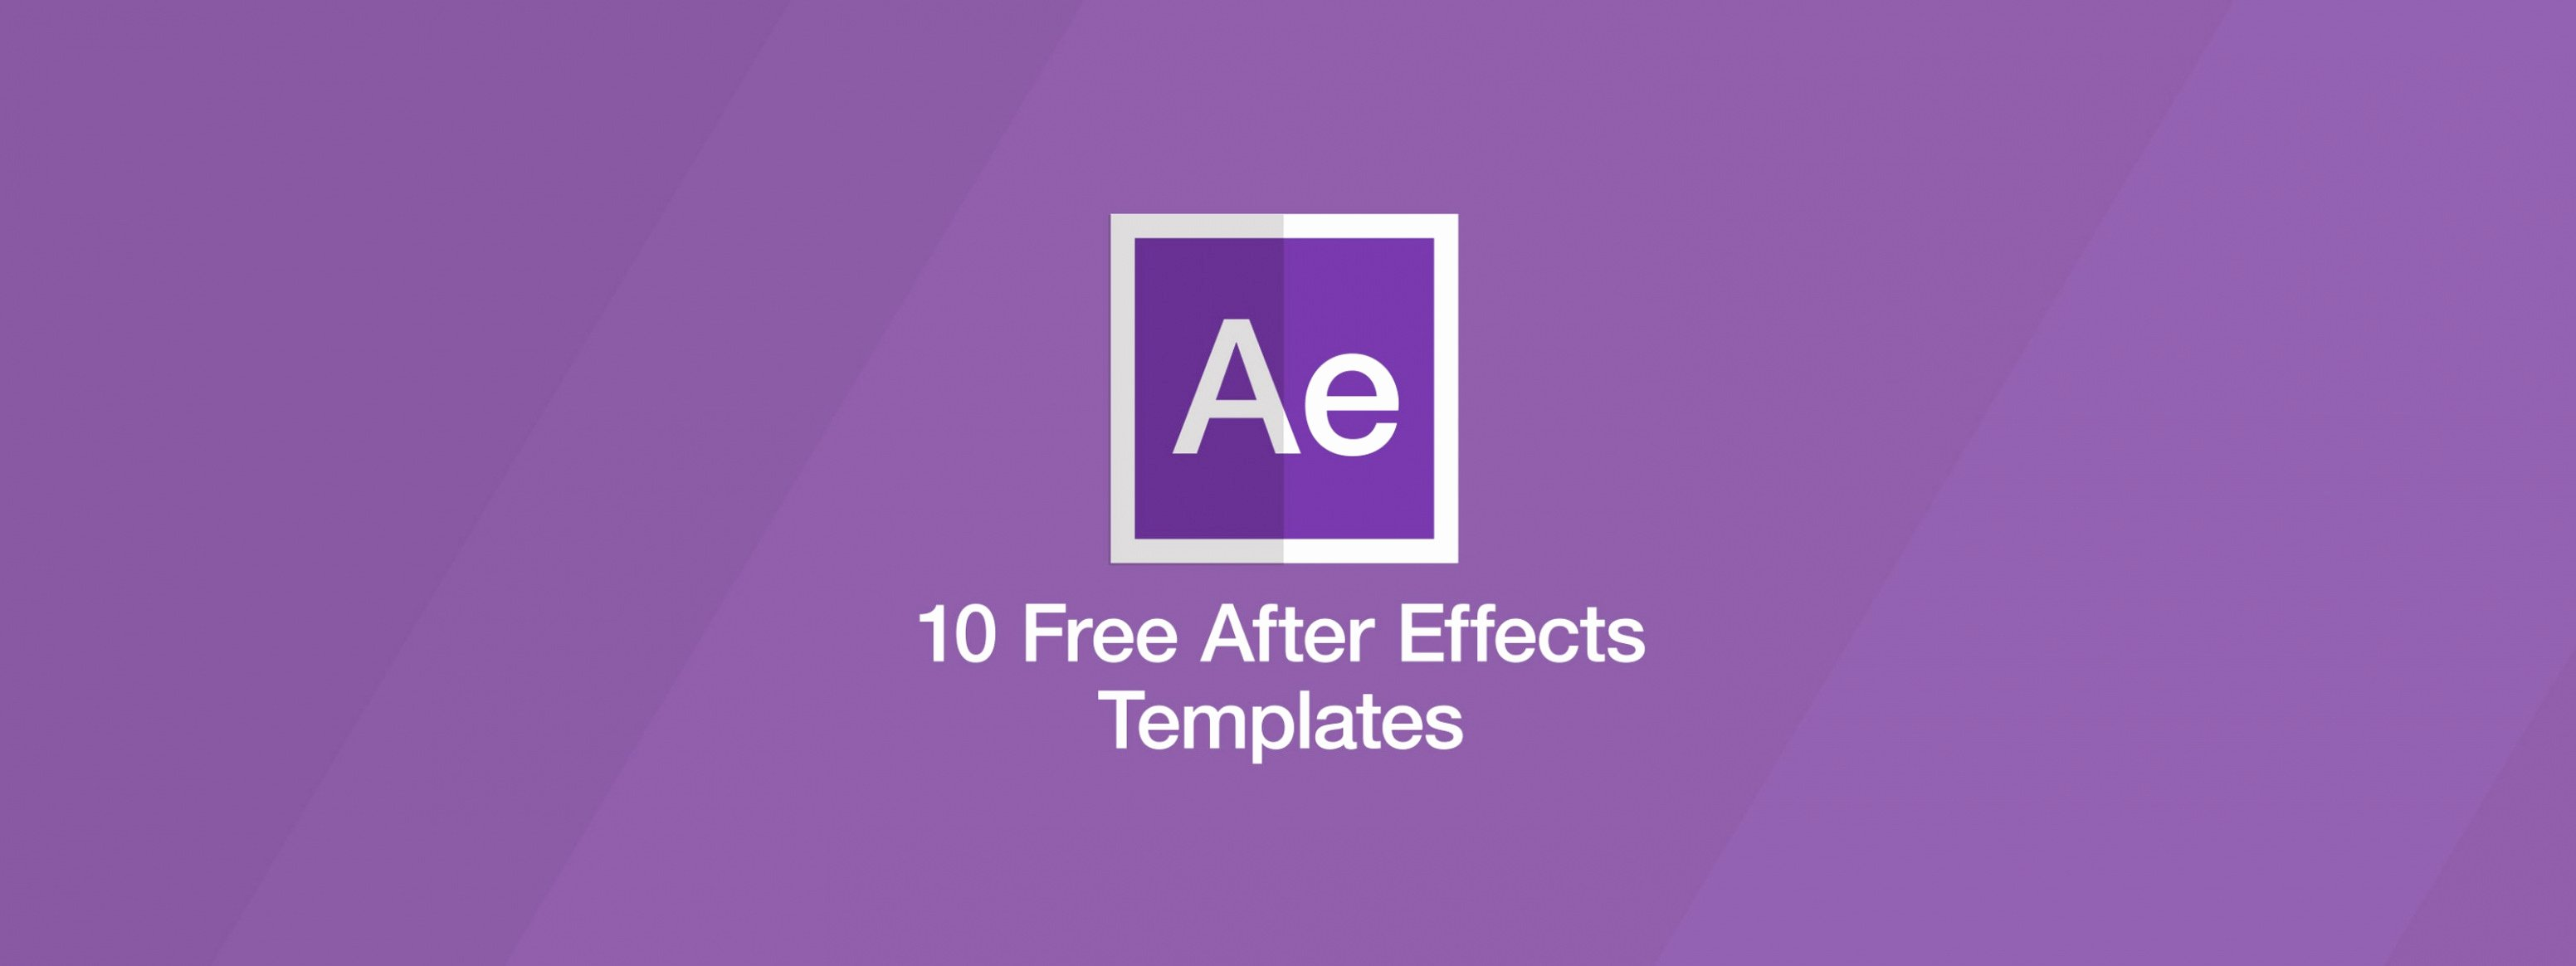 Download Our Sample 10 Free after Effects Templates